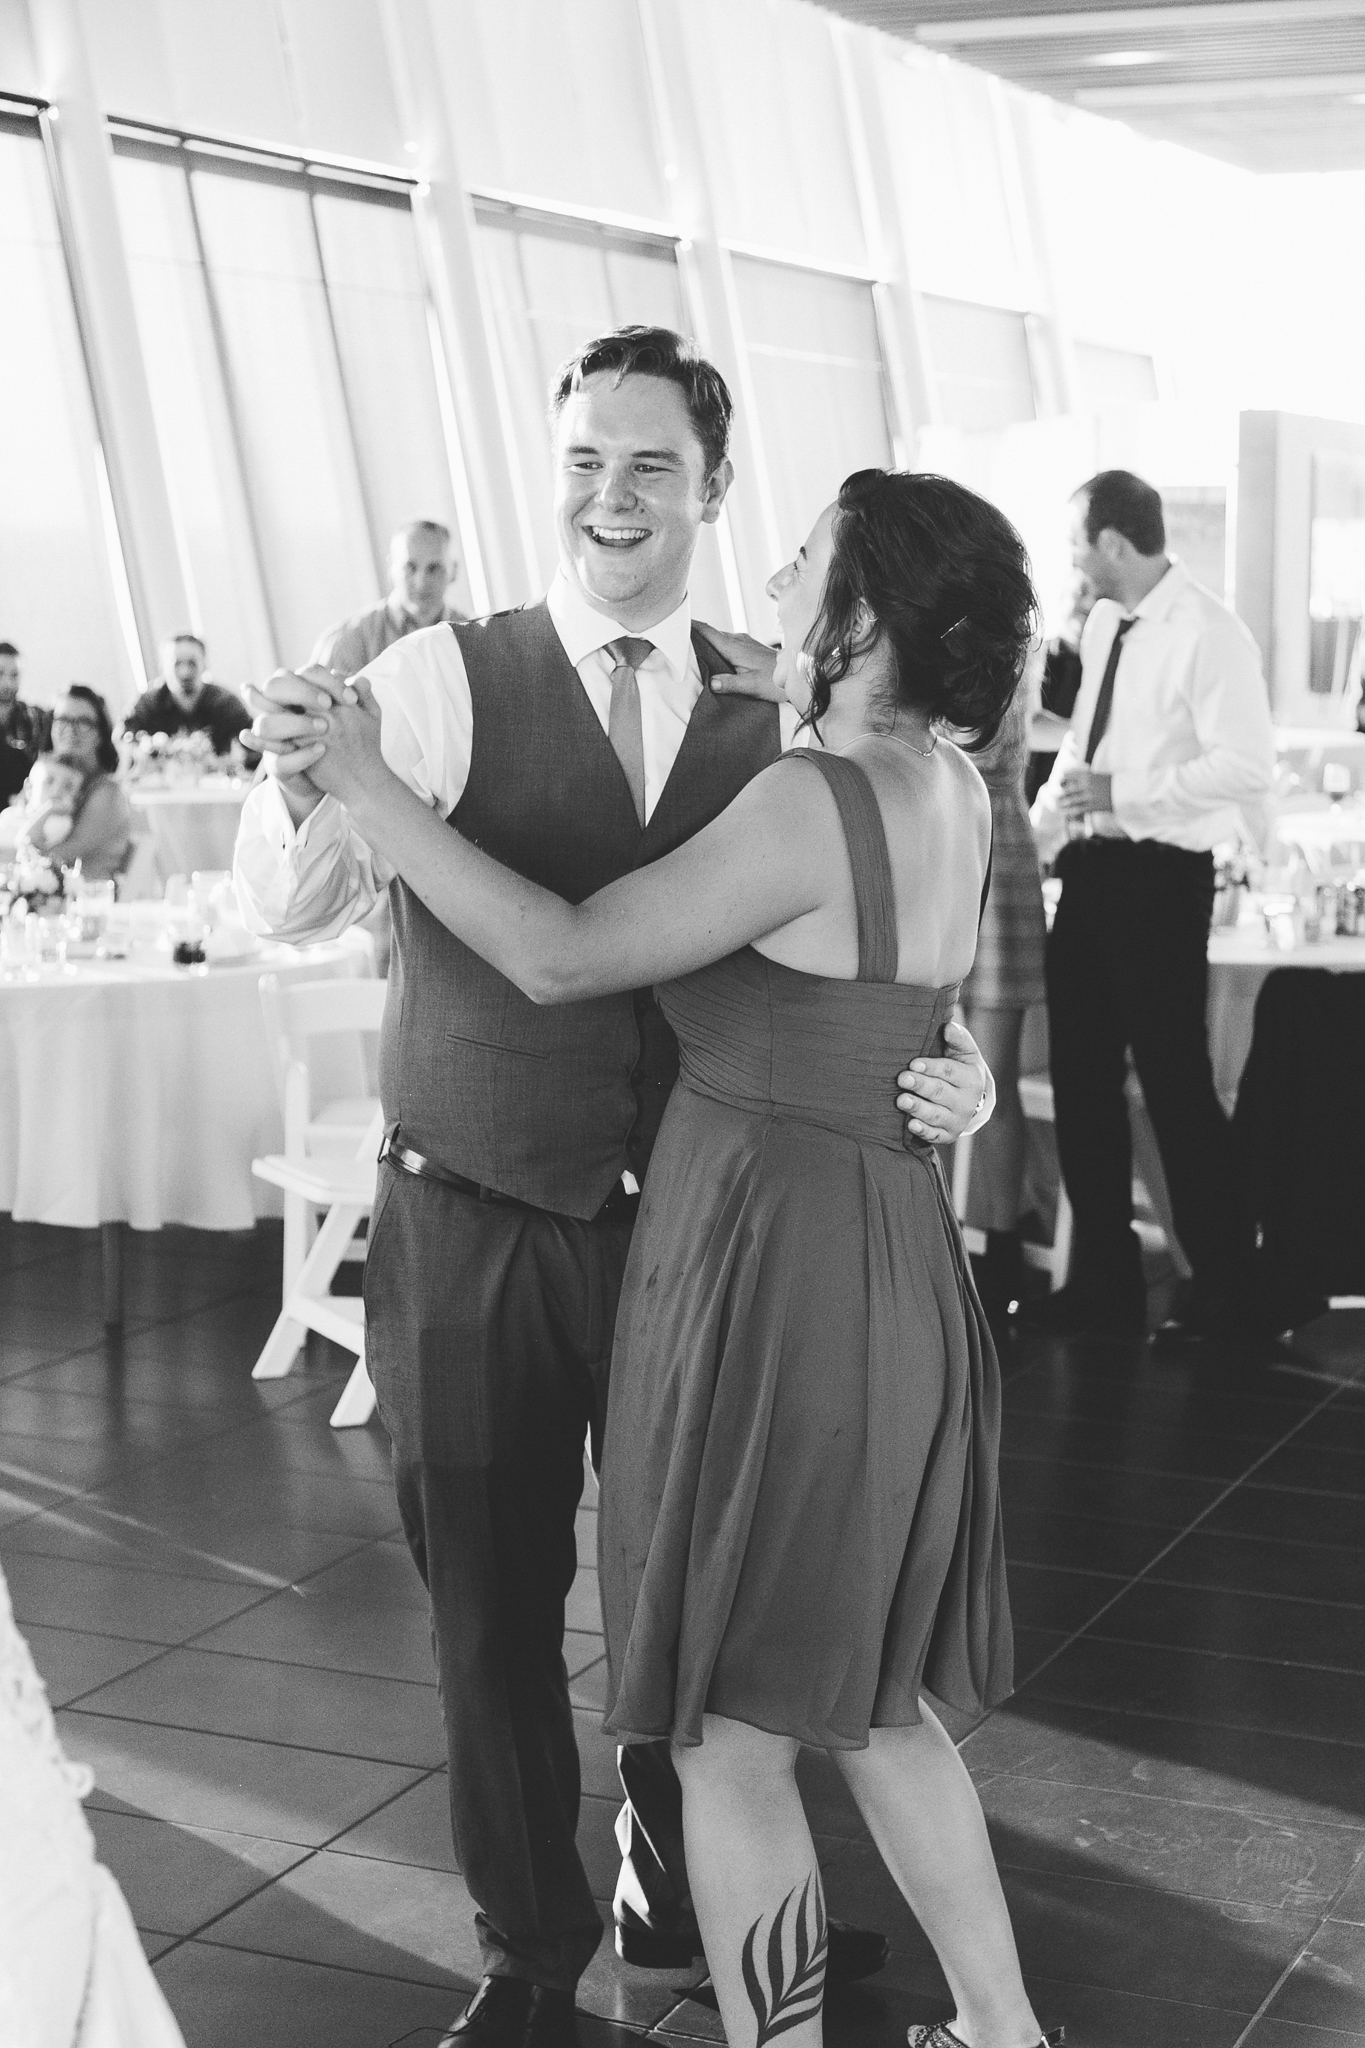 lethbridge-wedding-photographer-love-and-be-loved-photography-trent-danielle-galt-reception-picture-image-photo-211.jpg